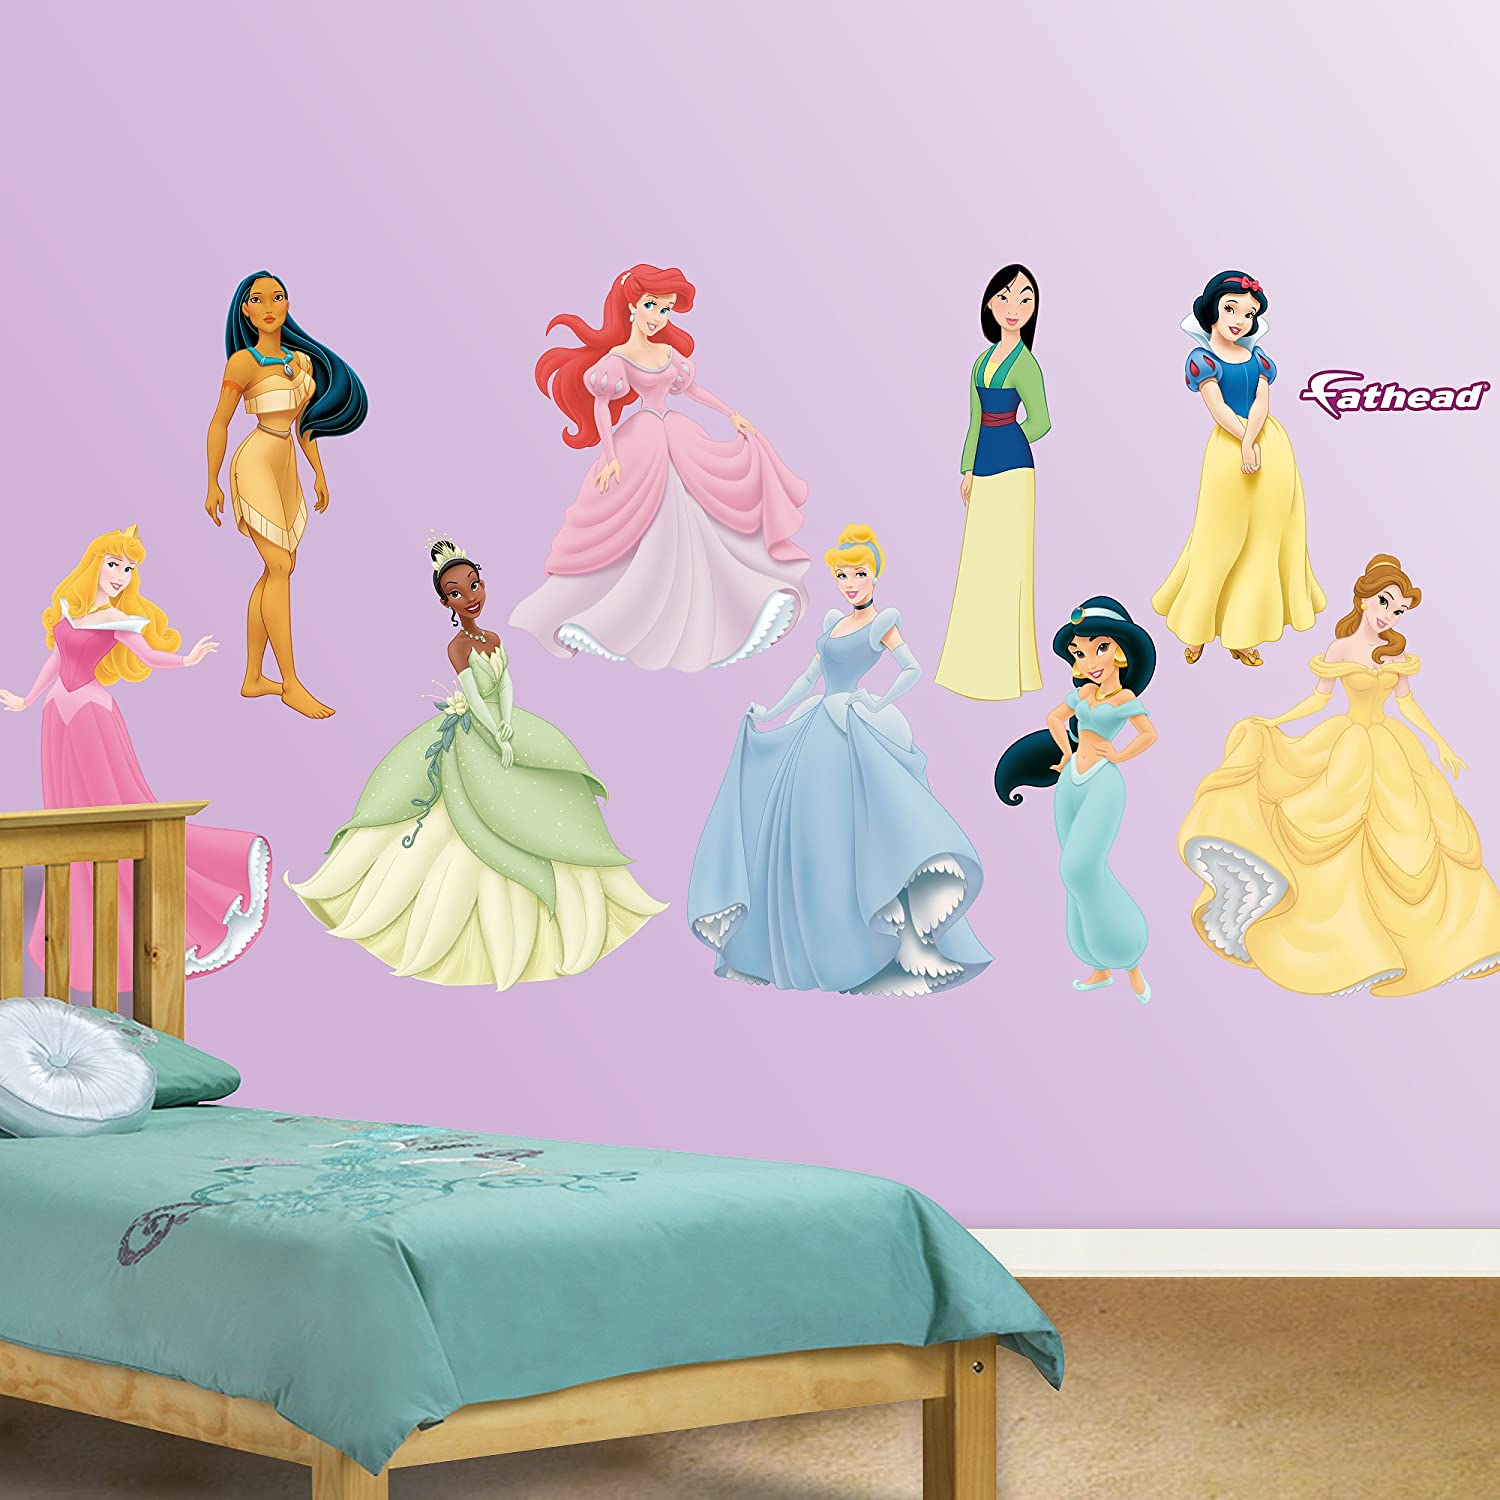 Charmant Amazon.com: FATHEAD Disney Princess Collection Graphic Wall Décor: Home U0026  Kitchen